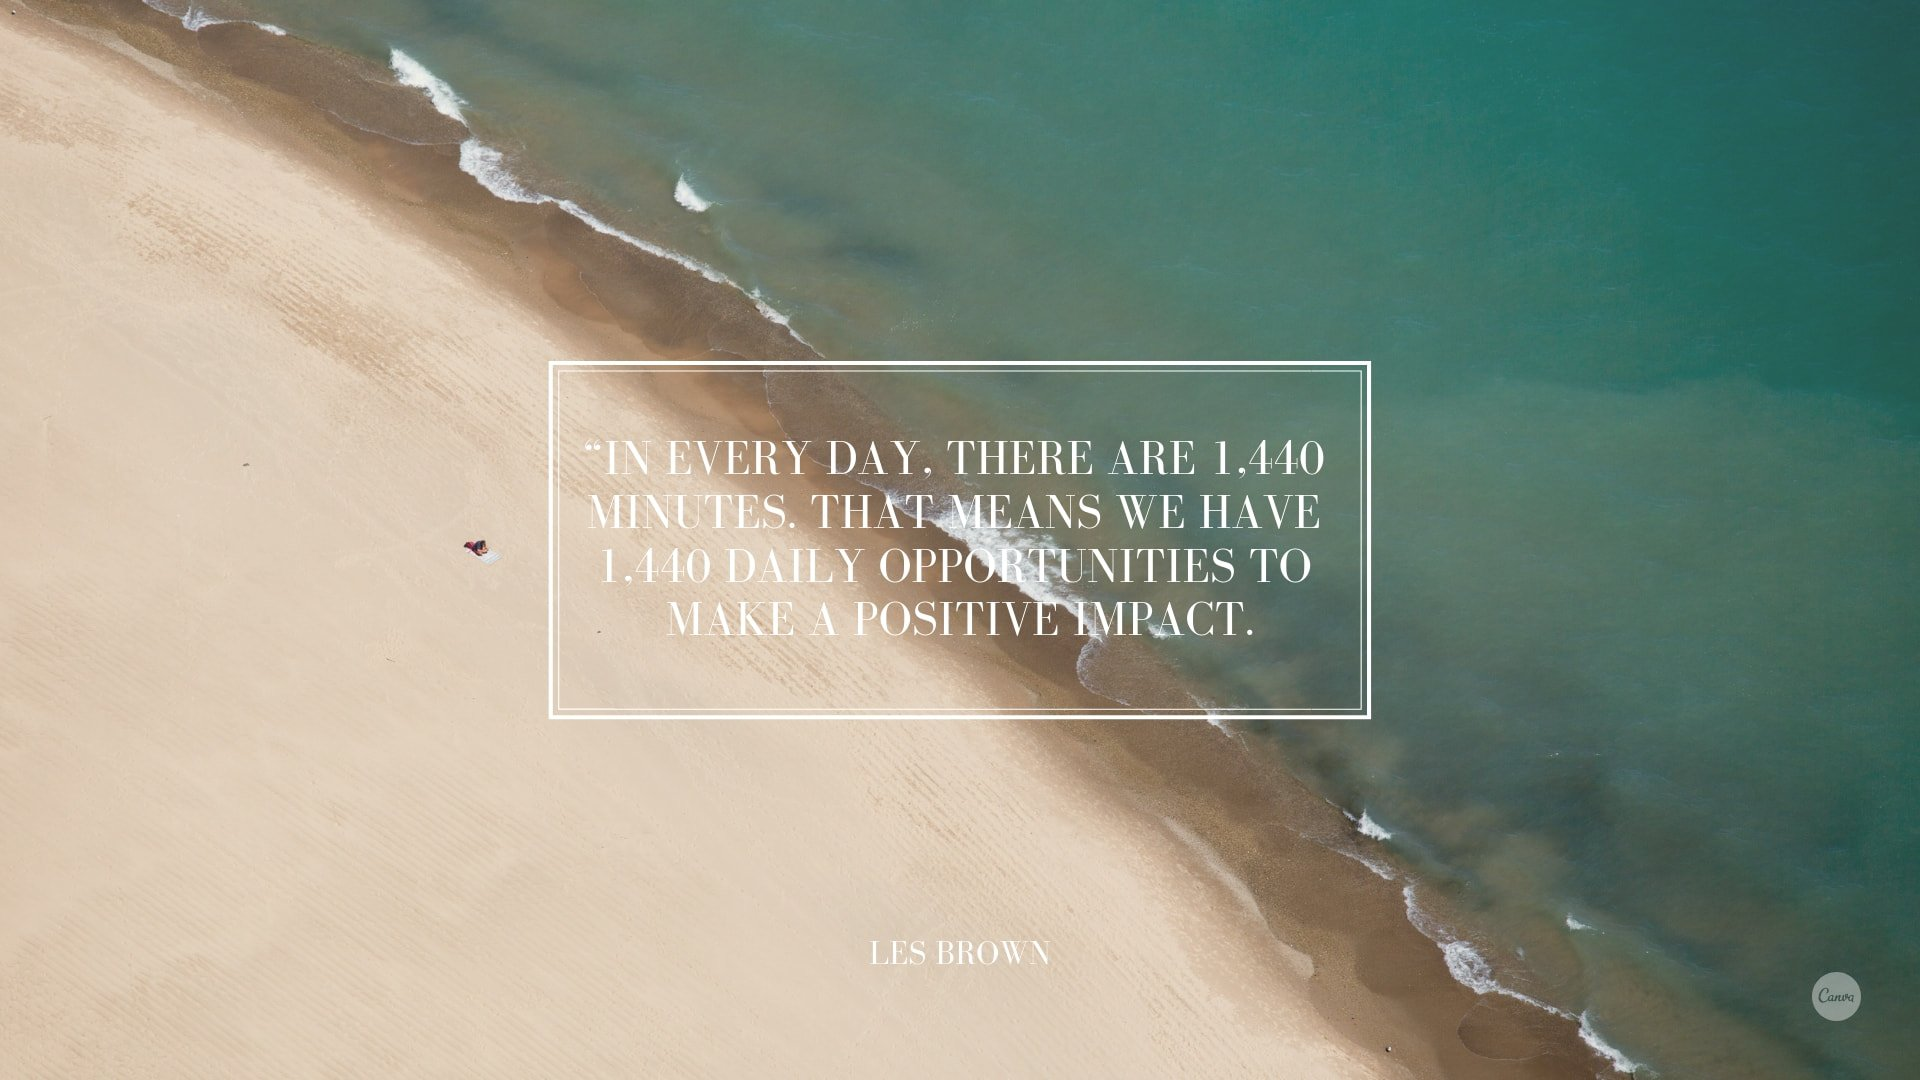 In every day there are 1440 minutes. That means we have 1440 daily opportunities to make a positive impact